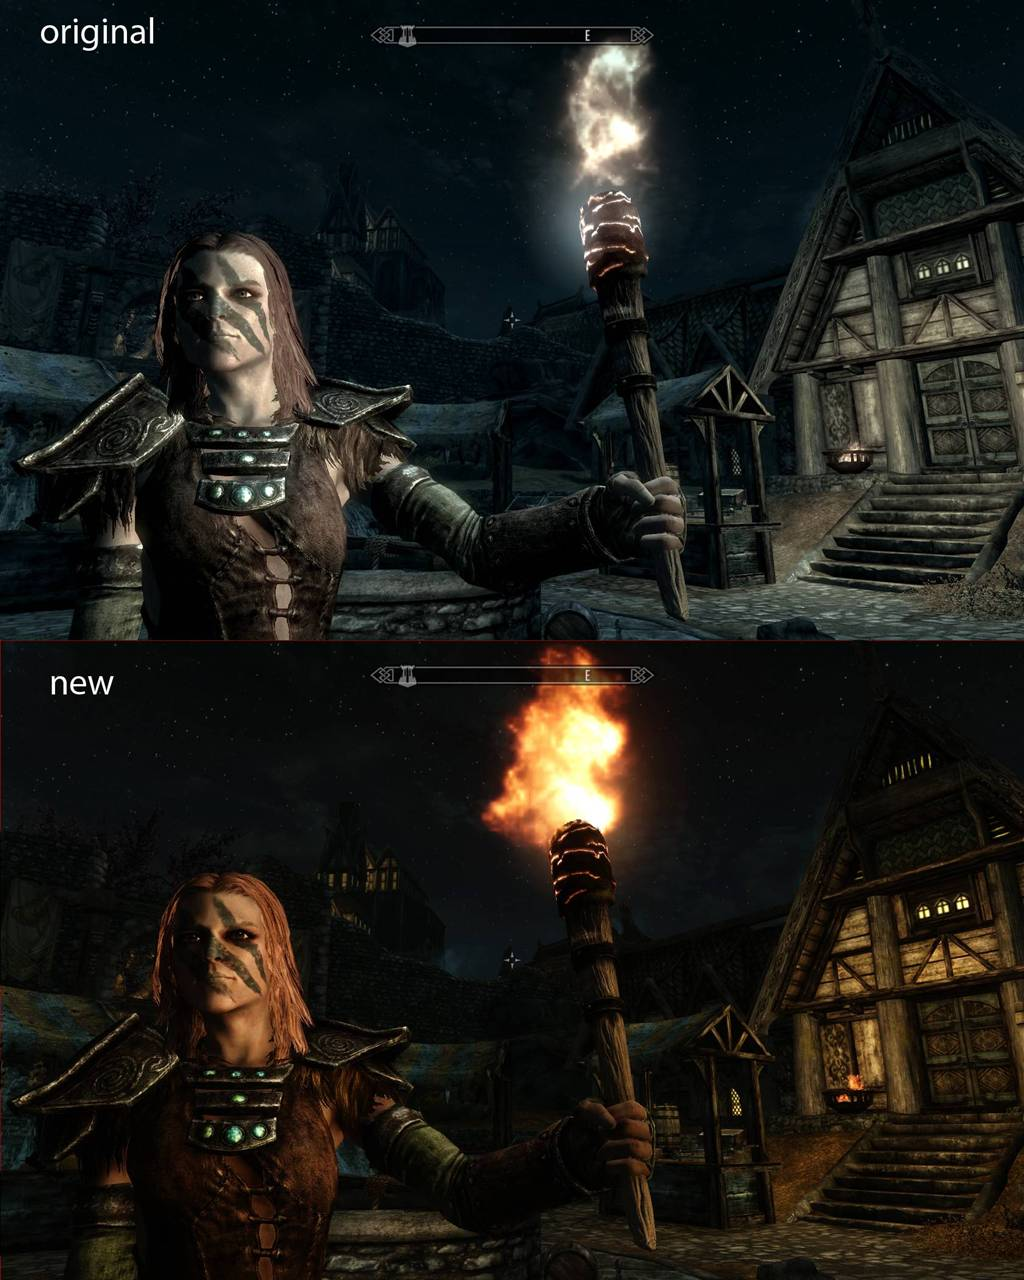 http://gamingbolt.com/wp-content/gallery/latest-lighting-and-realistic-colours-mod-for-skyrim-transforms-the-game/1.jpg